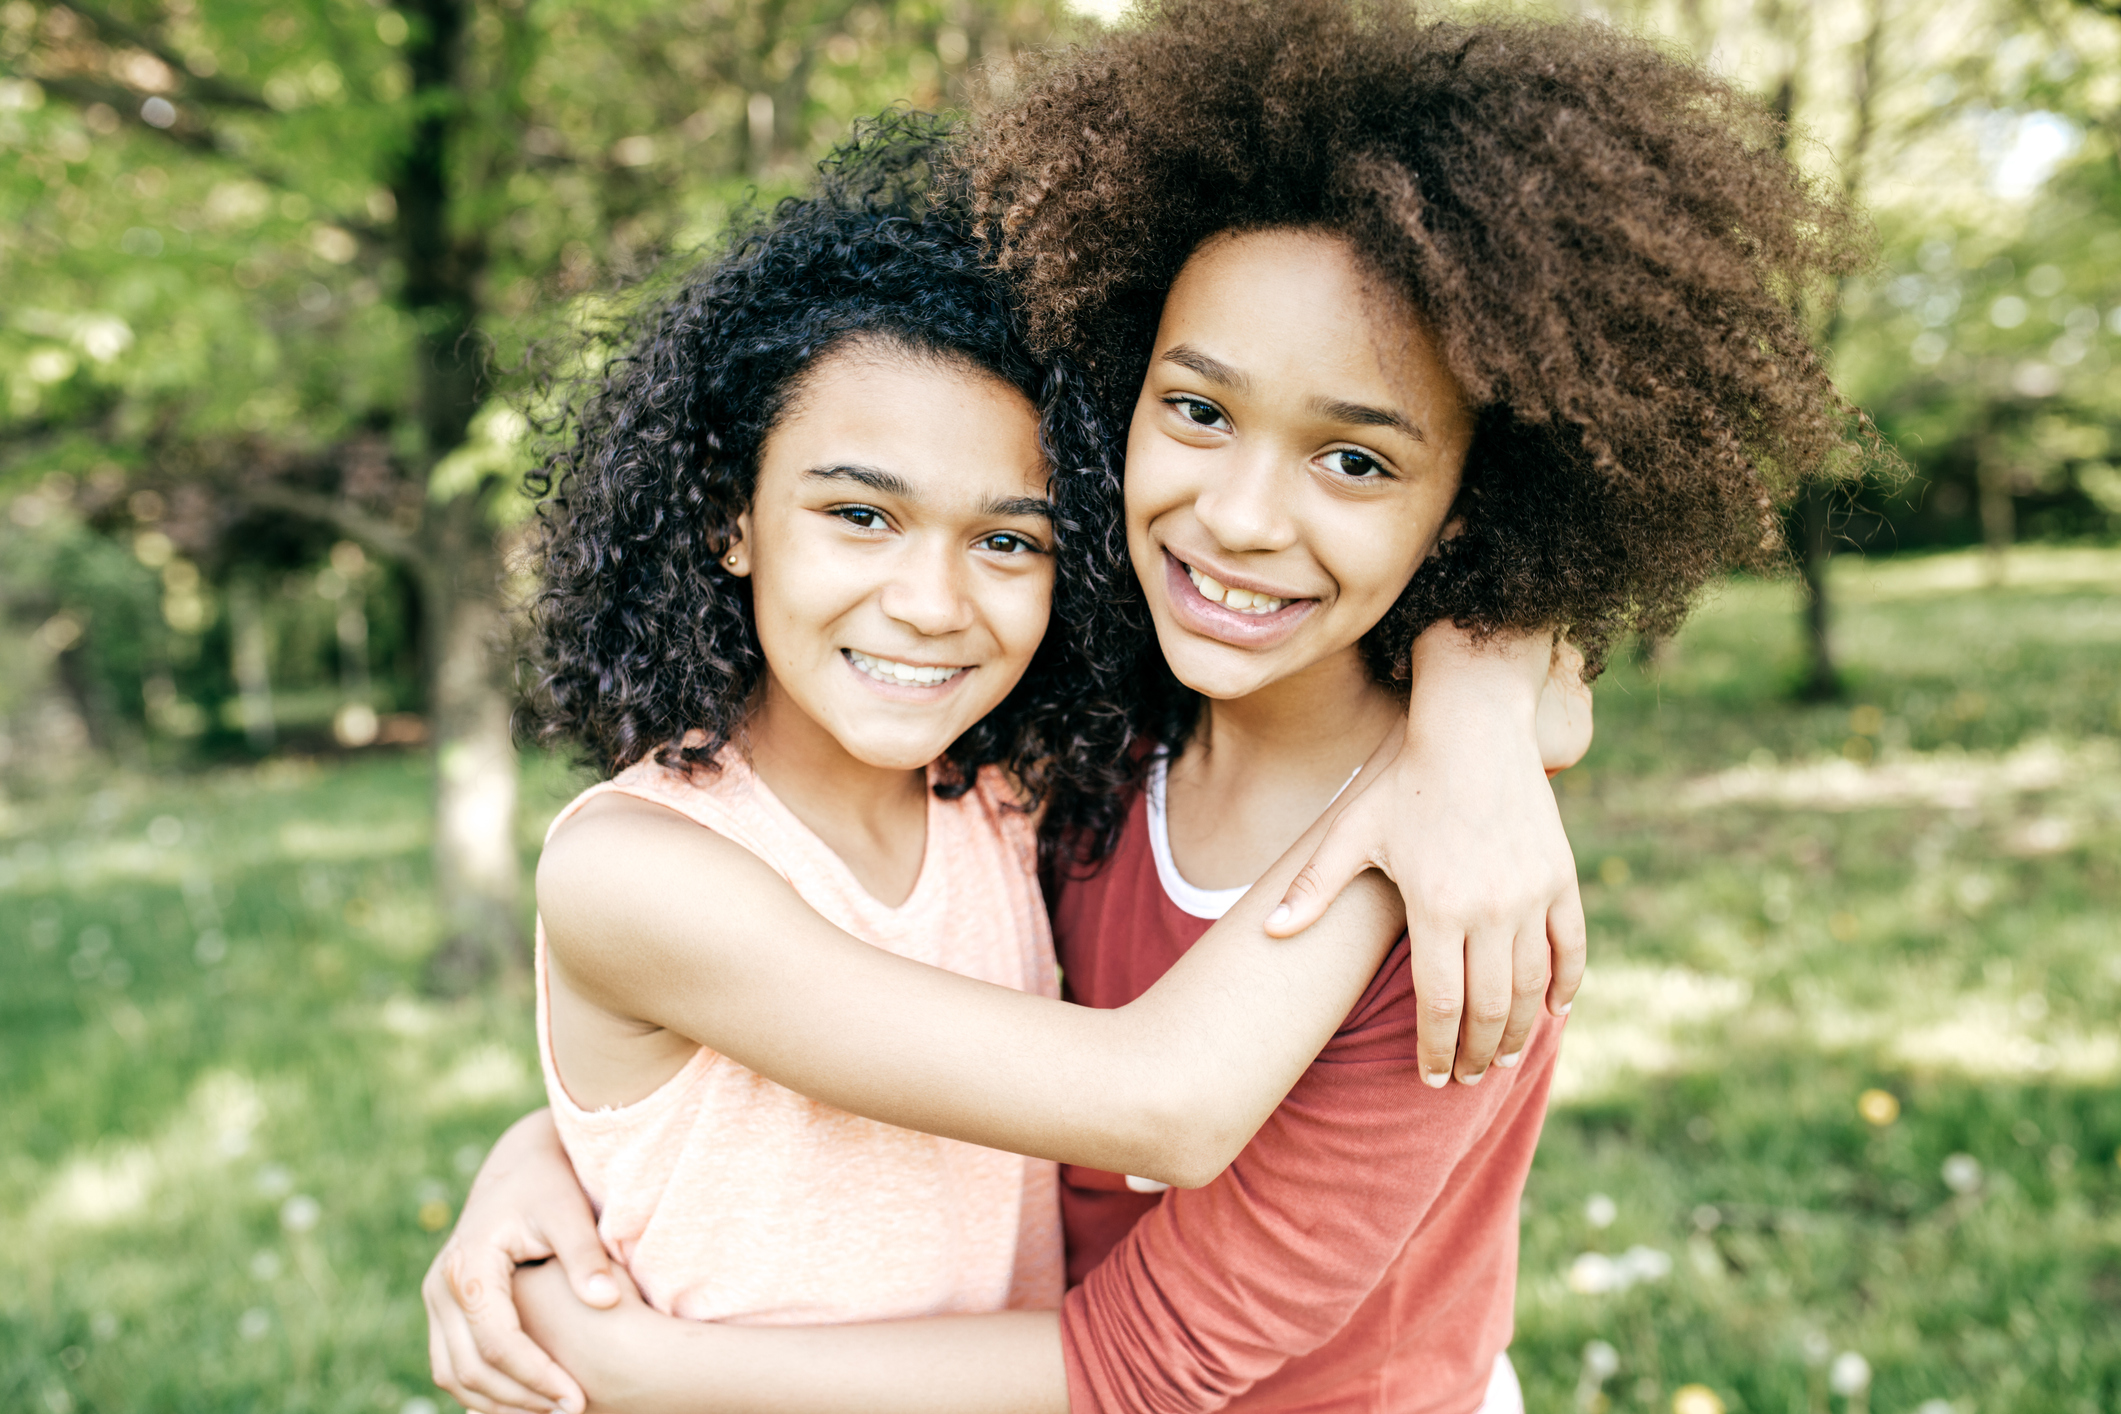 Two sisters hugging ages 9 and 11